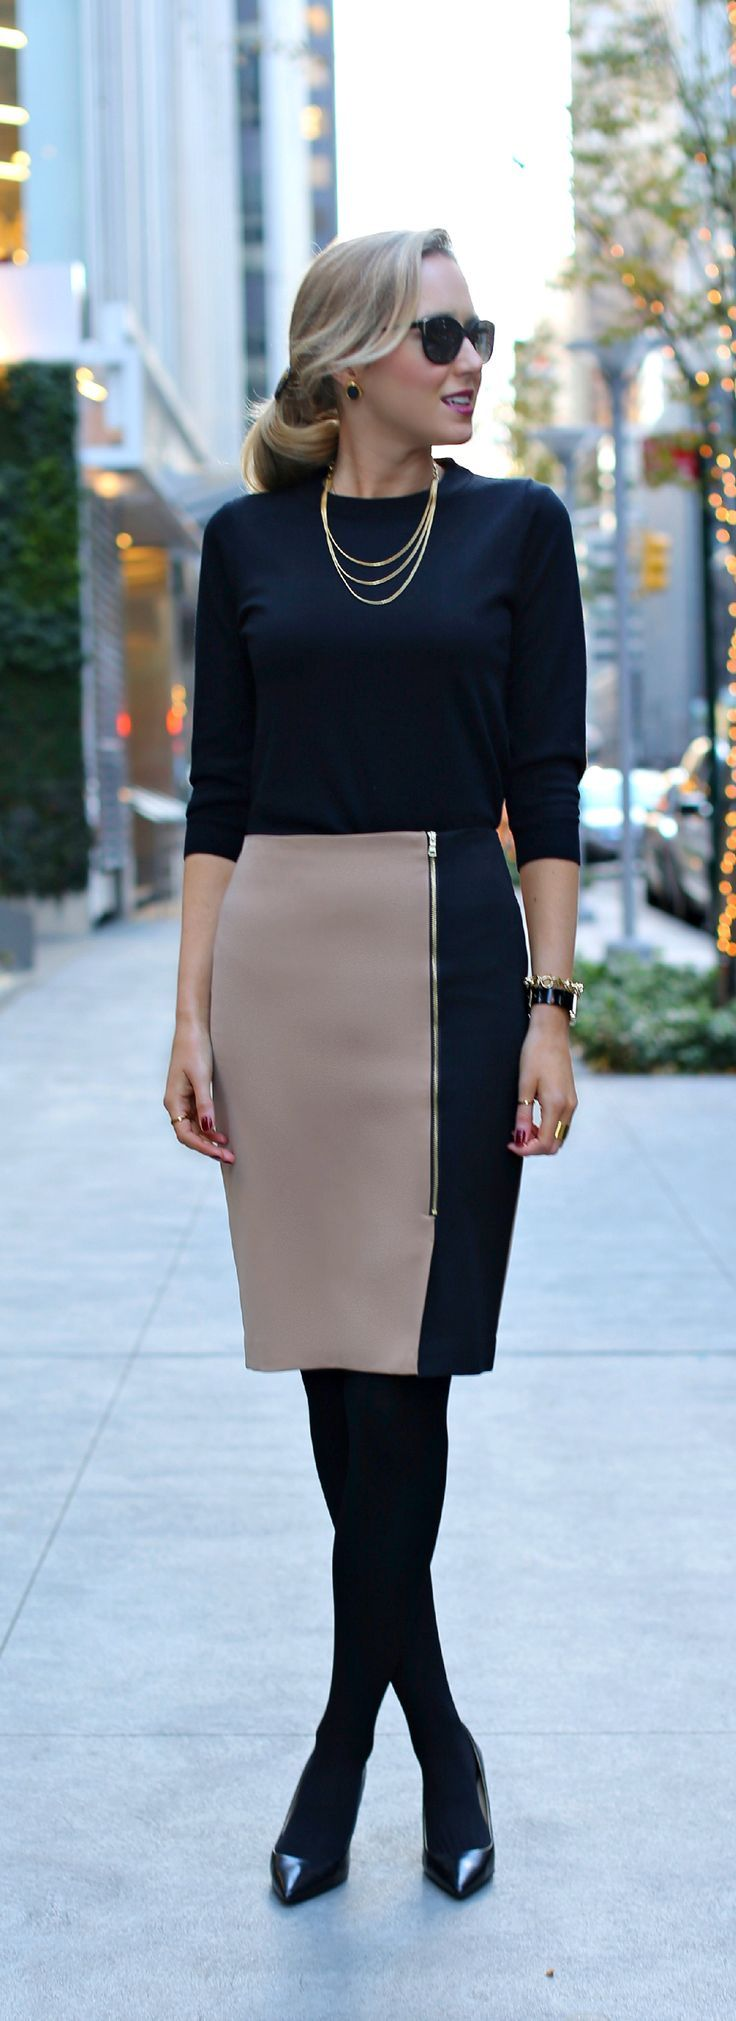 Classy all black office attire. | Office Style                                                                                                                                                      More